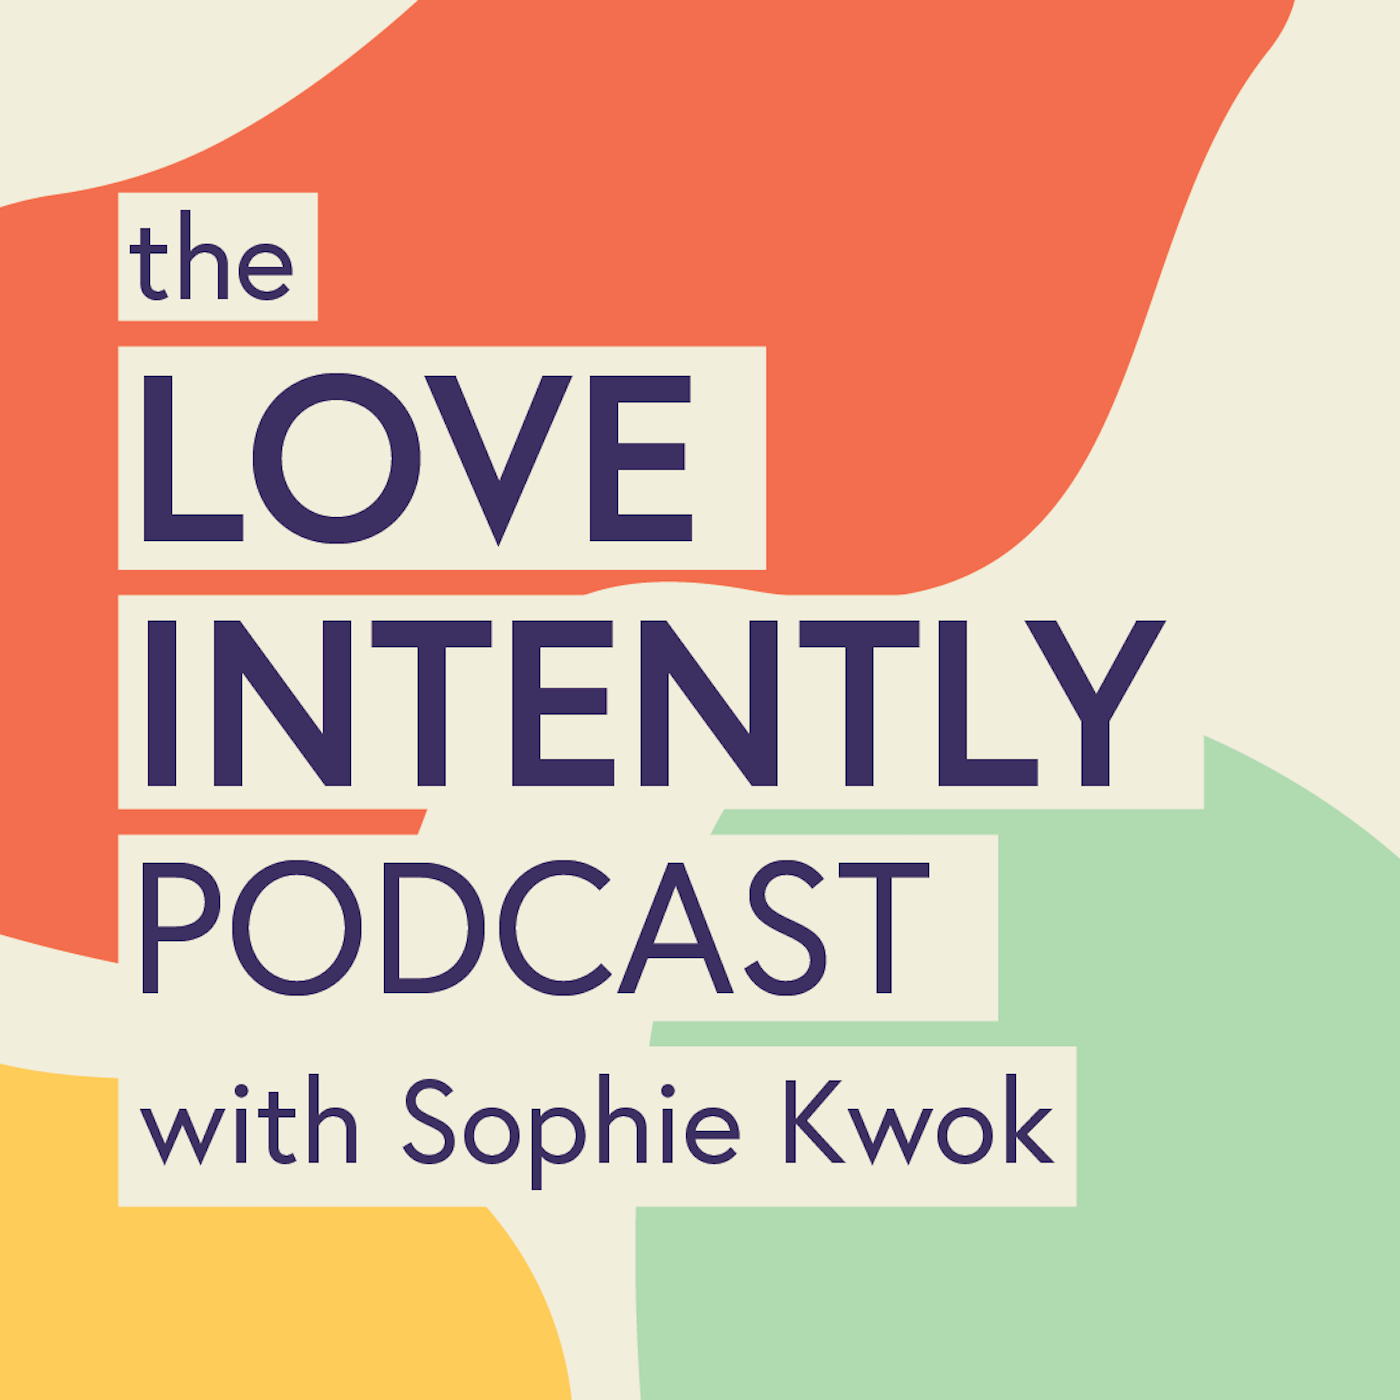 Love Intently Podcast with Sophie Kwok show art